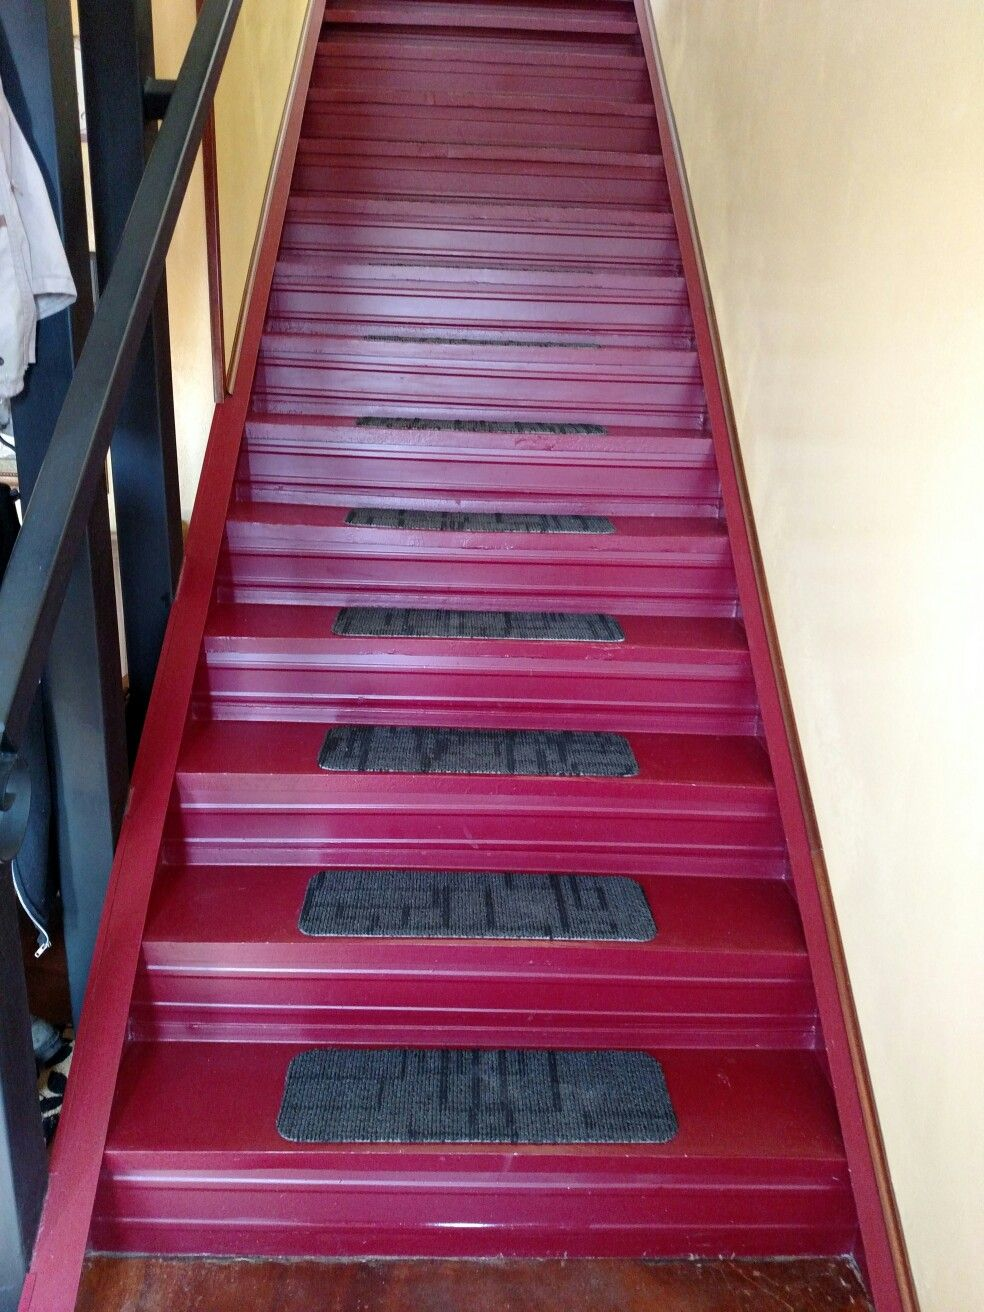 Let s go upstairs